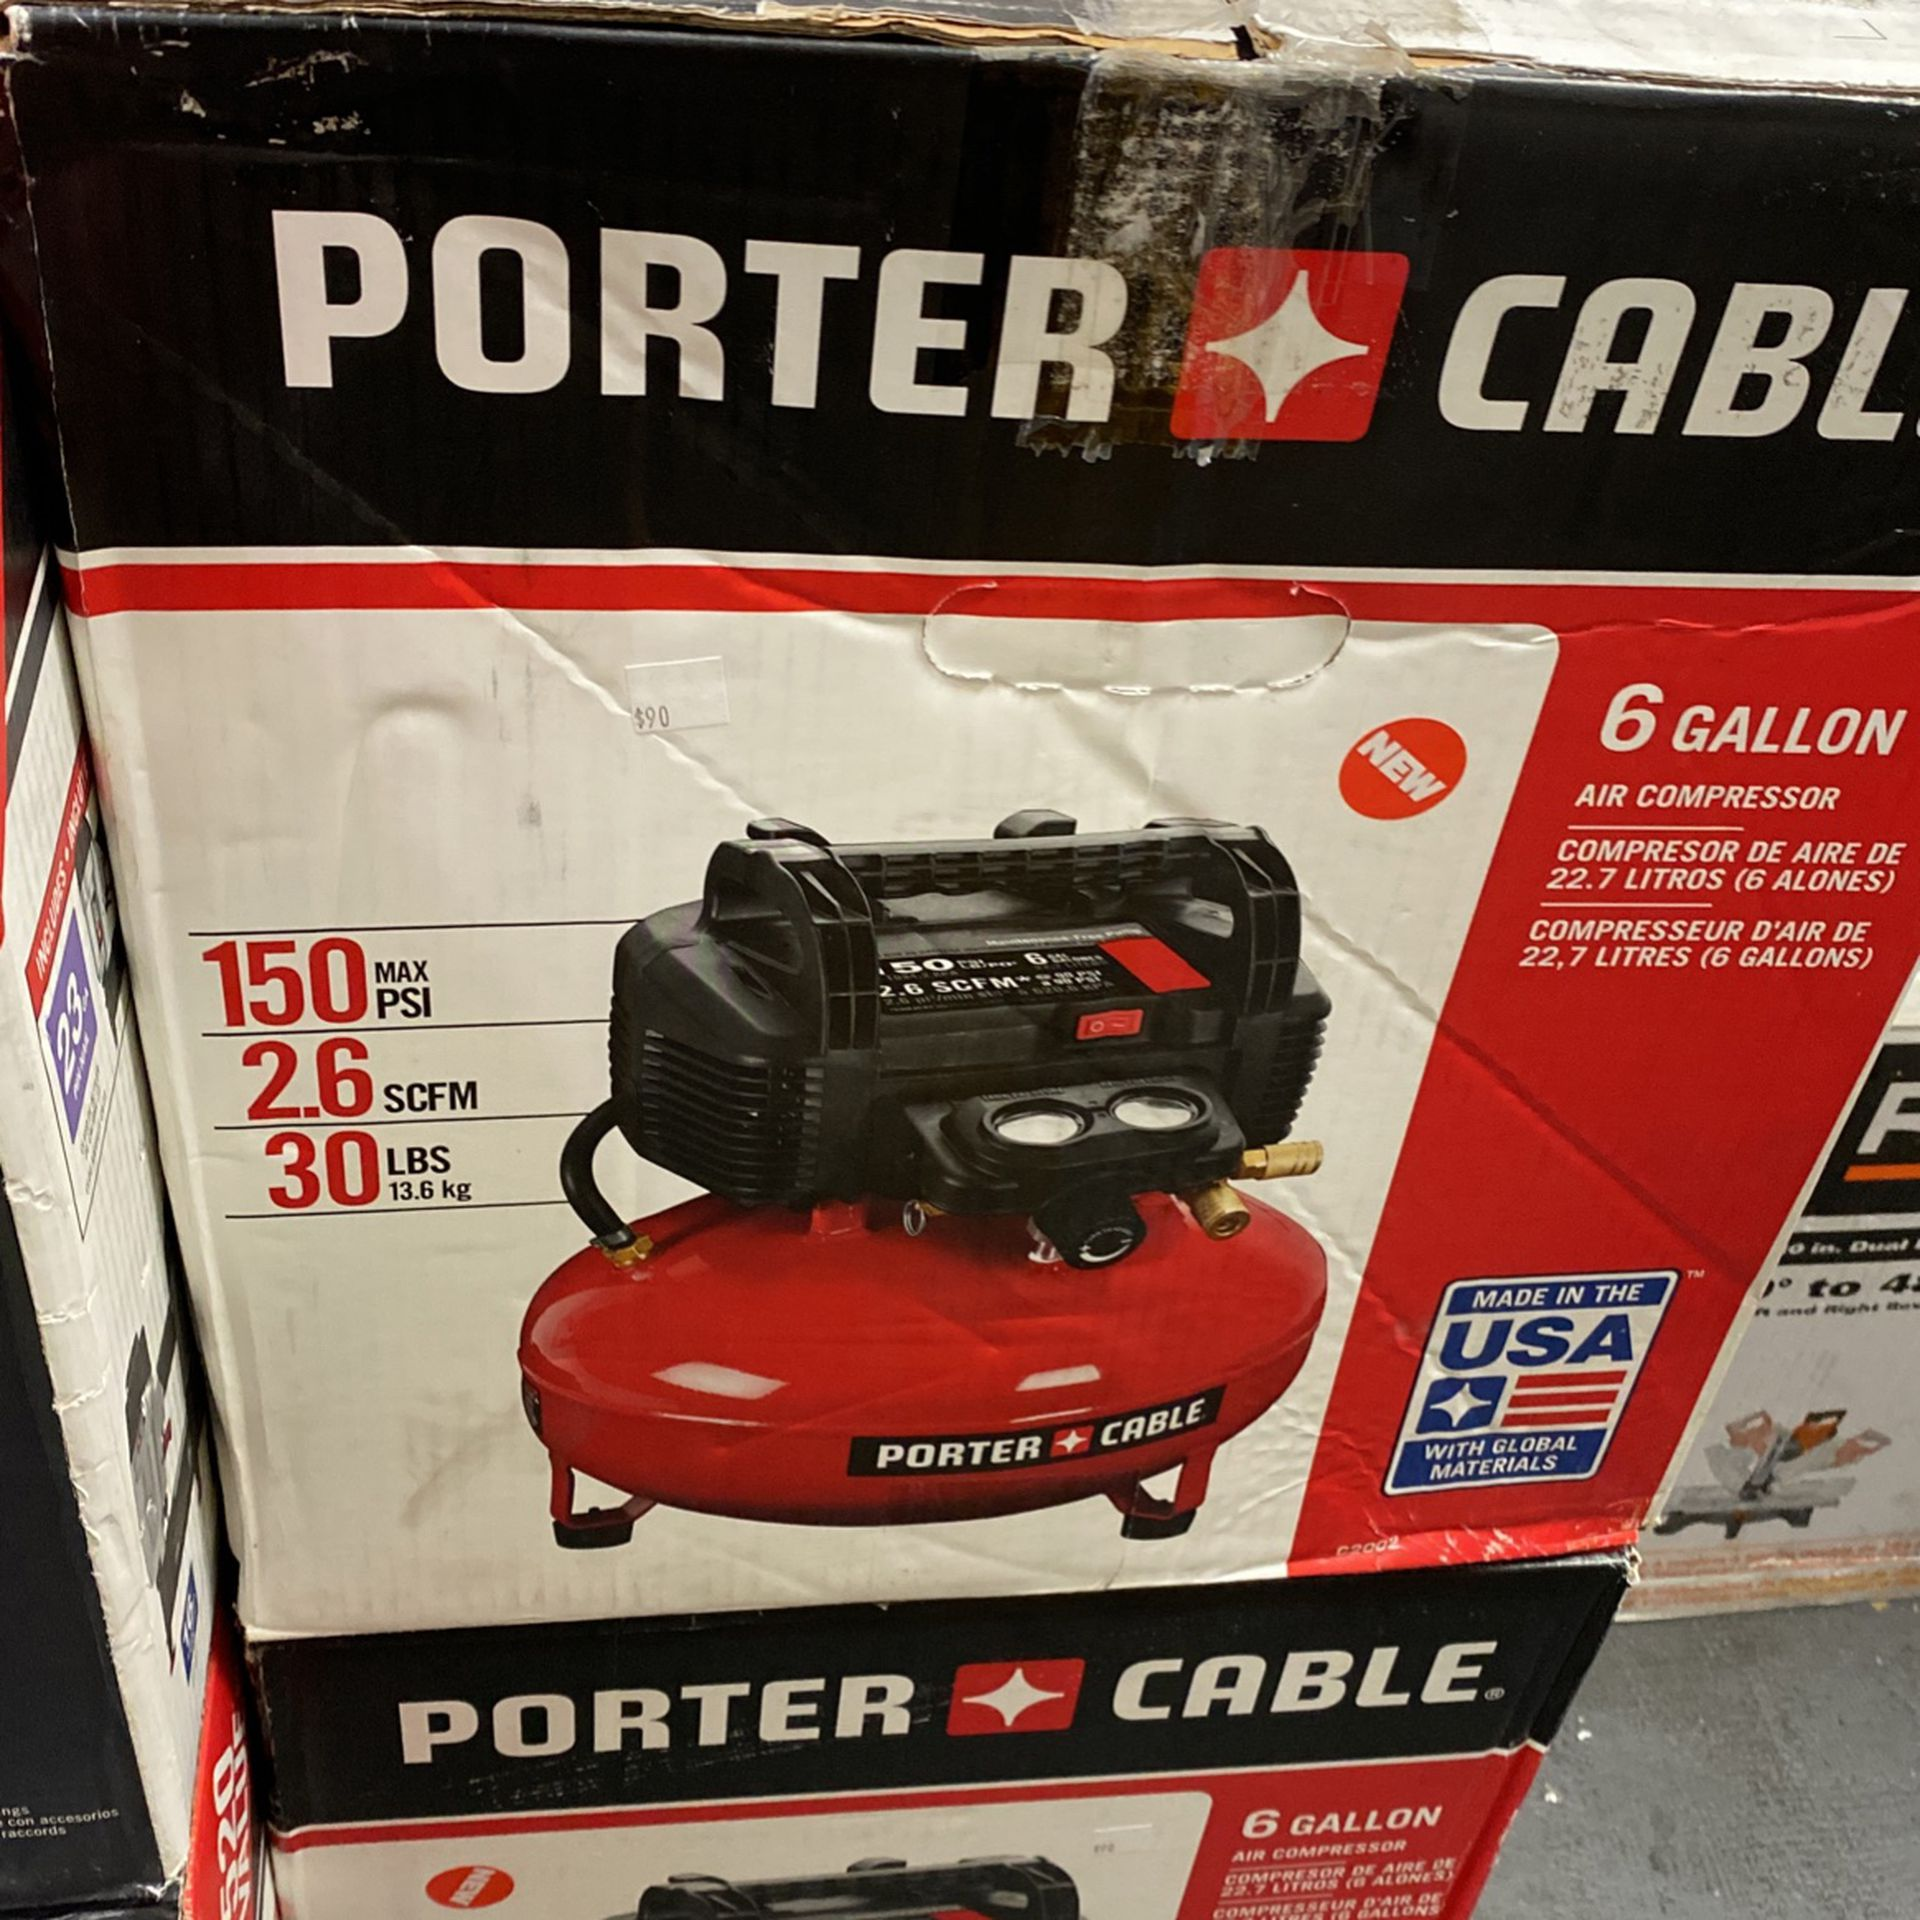 Porter Cable 6 Gallon Air Compressor Only Asking $90